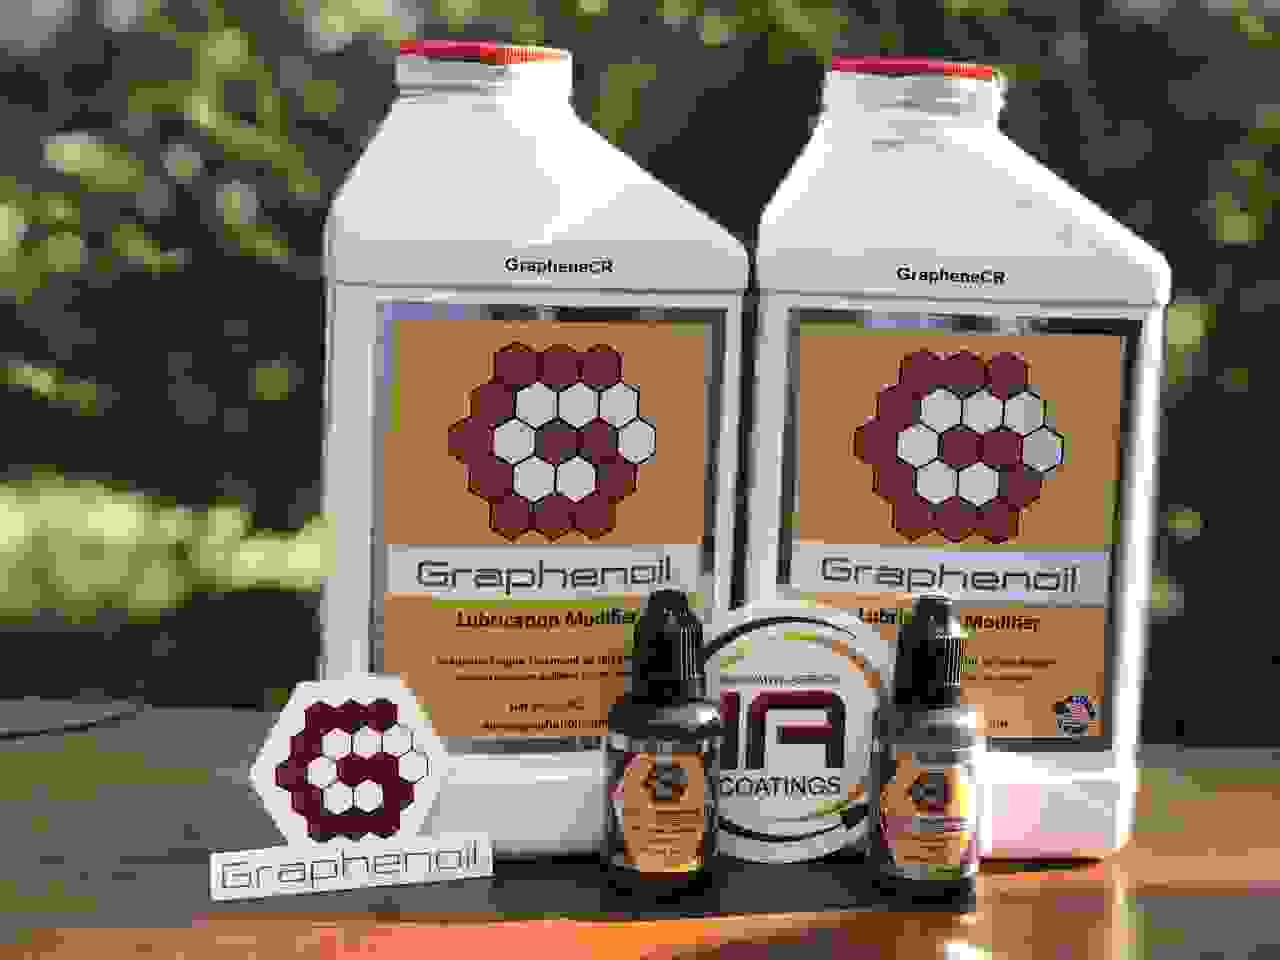 Graphenoil graphene enhanced lubricants now made with GrapheneCR's ProCene graphene.